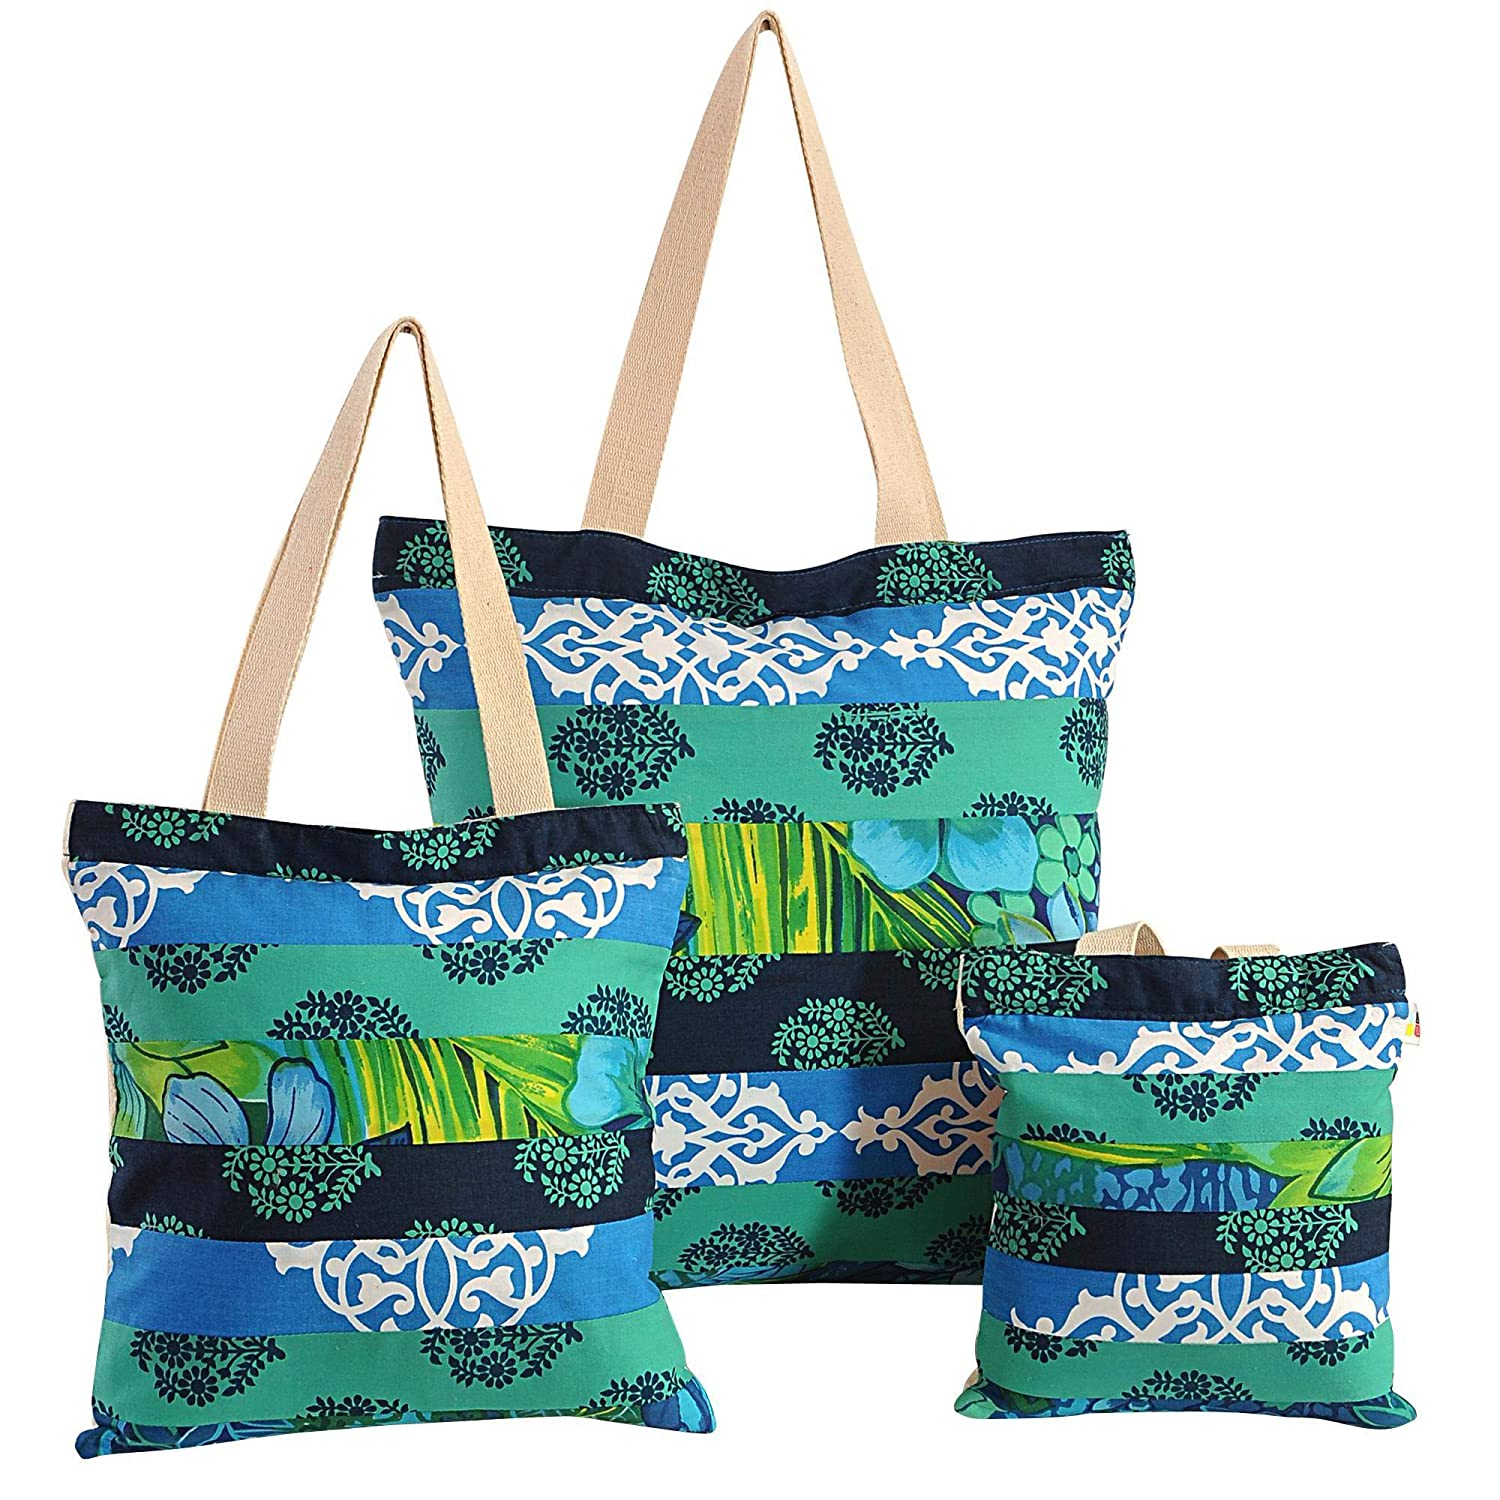 with Zipper Closing and design patche 3 pcs Set Shopping Bag Applique Patchwork